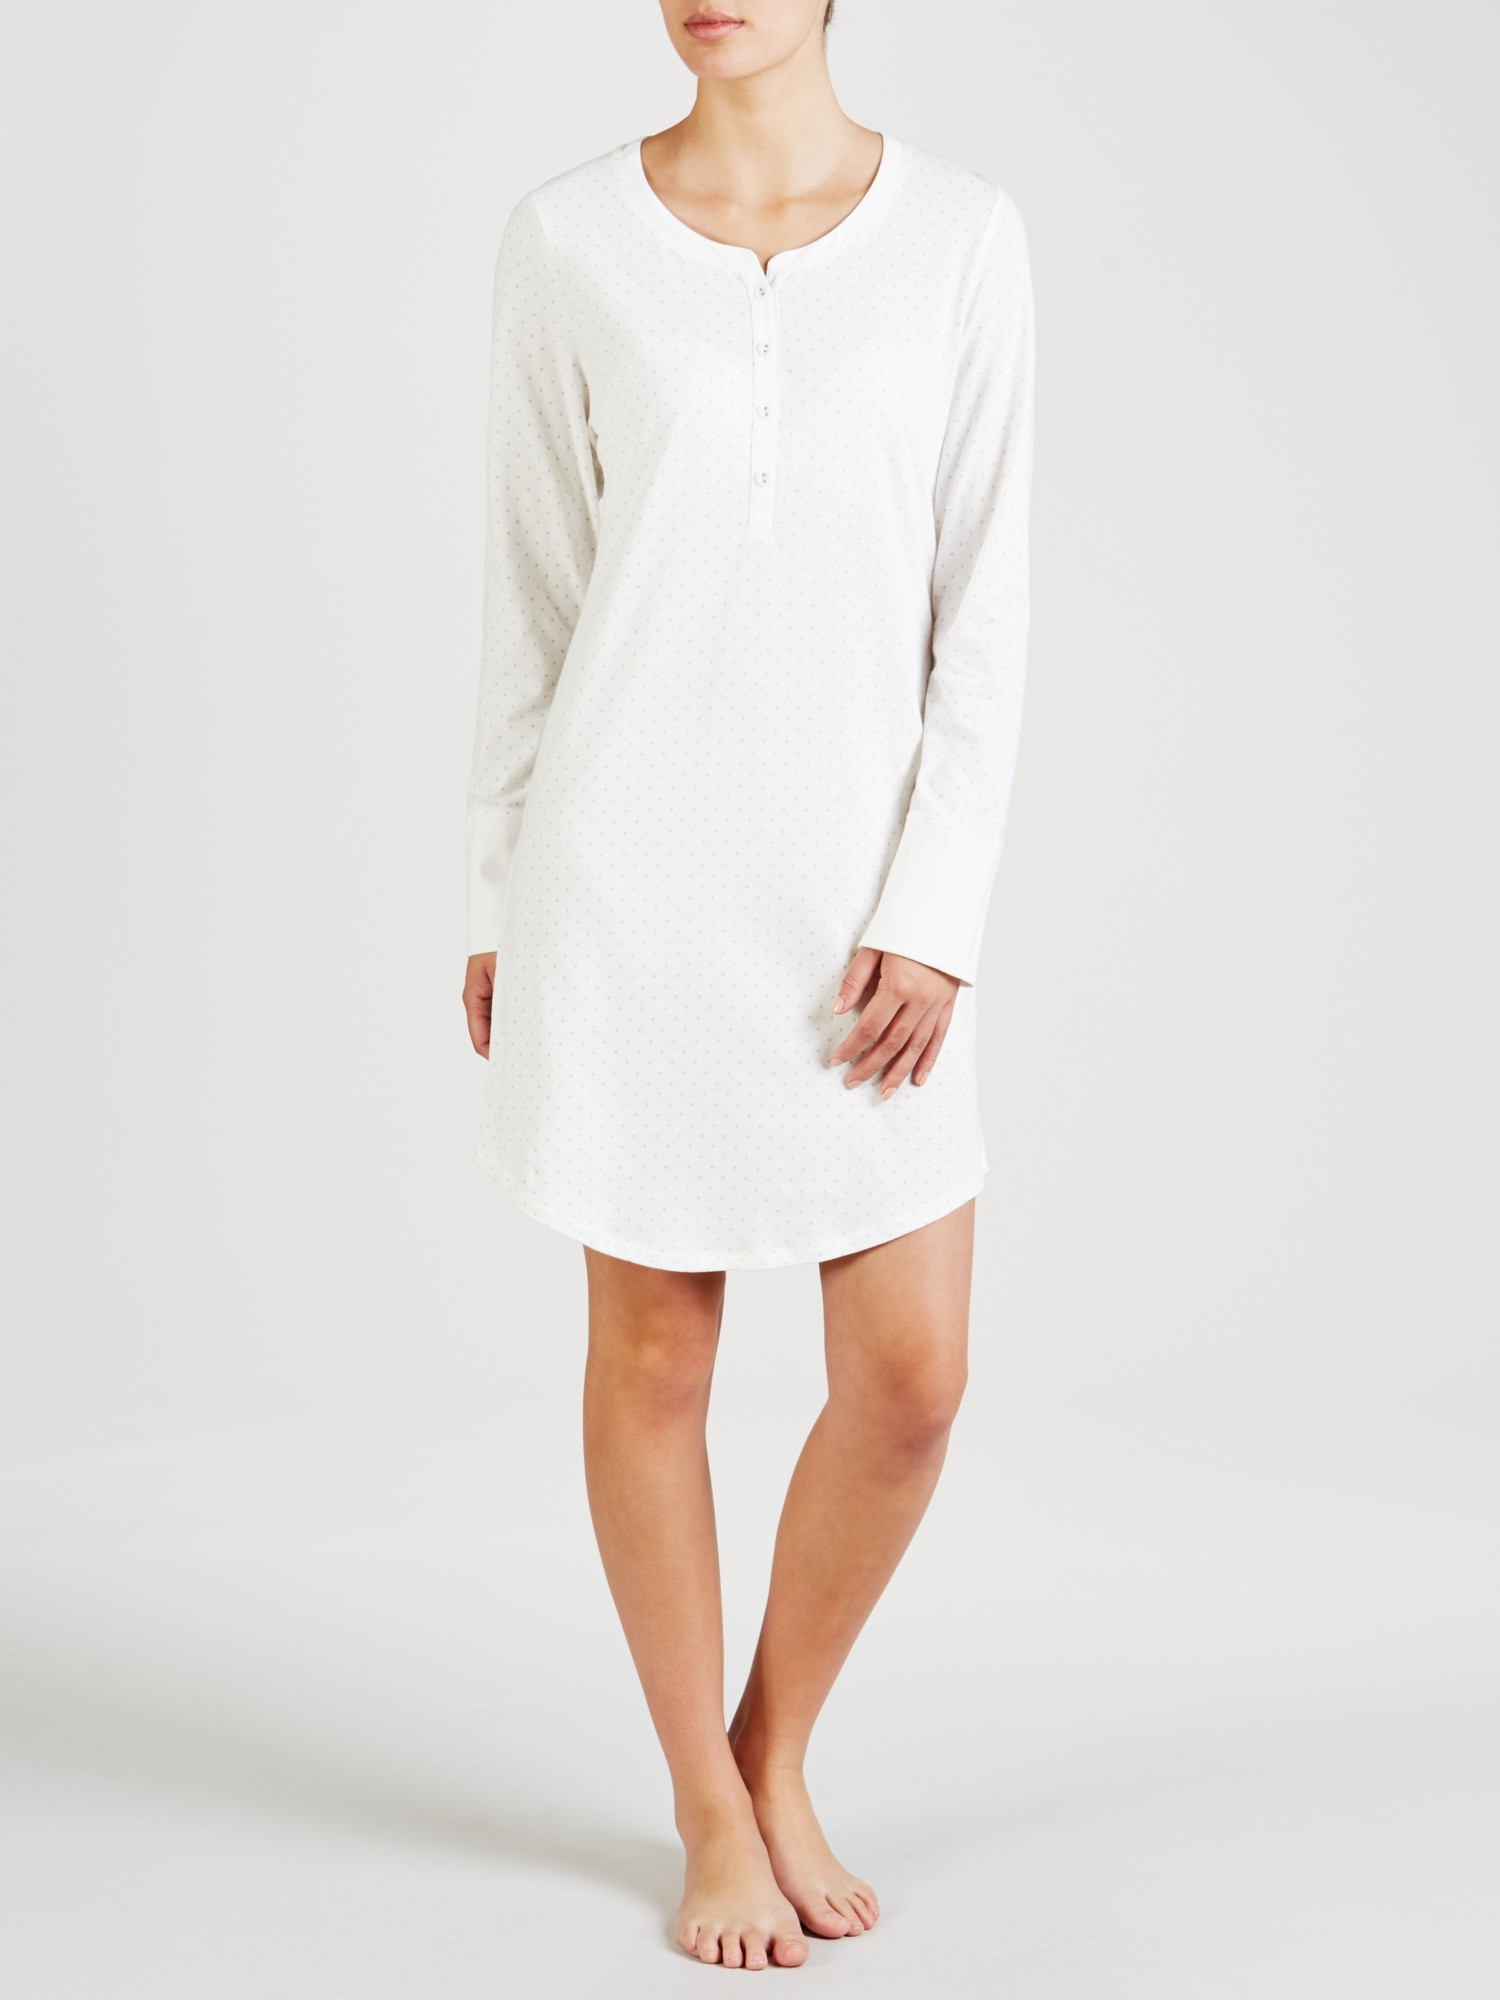 8ea4252134 John Lewis Carrie Spot Nightdress in White - Lyst